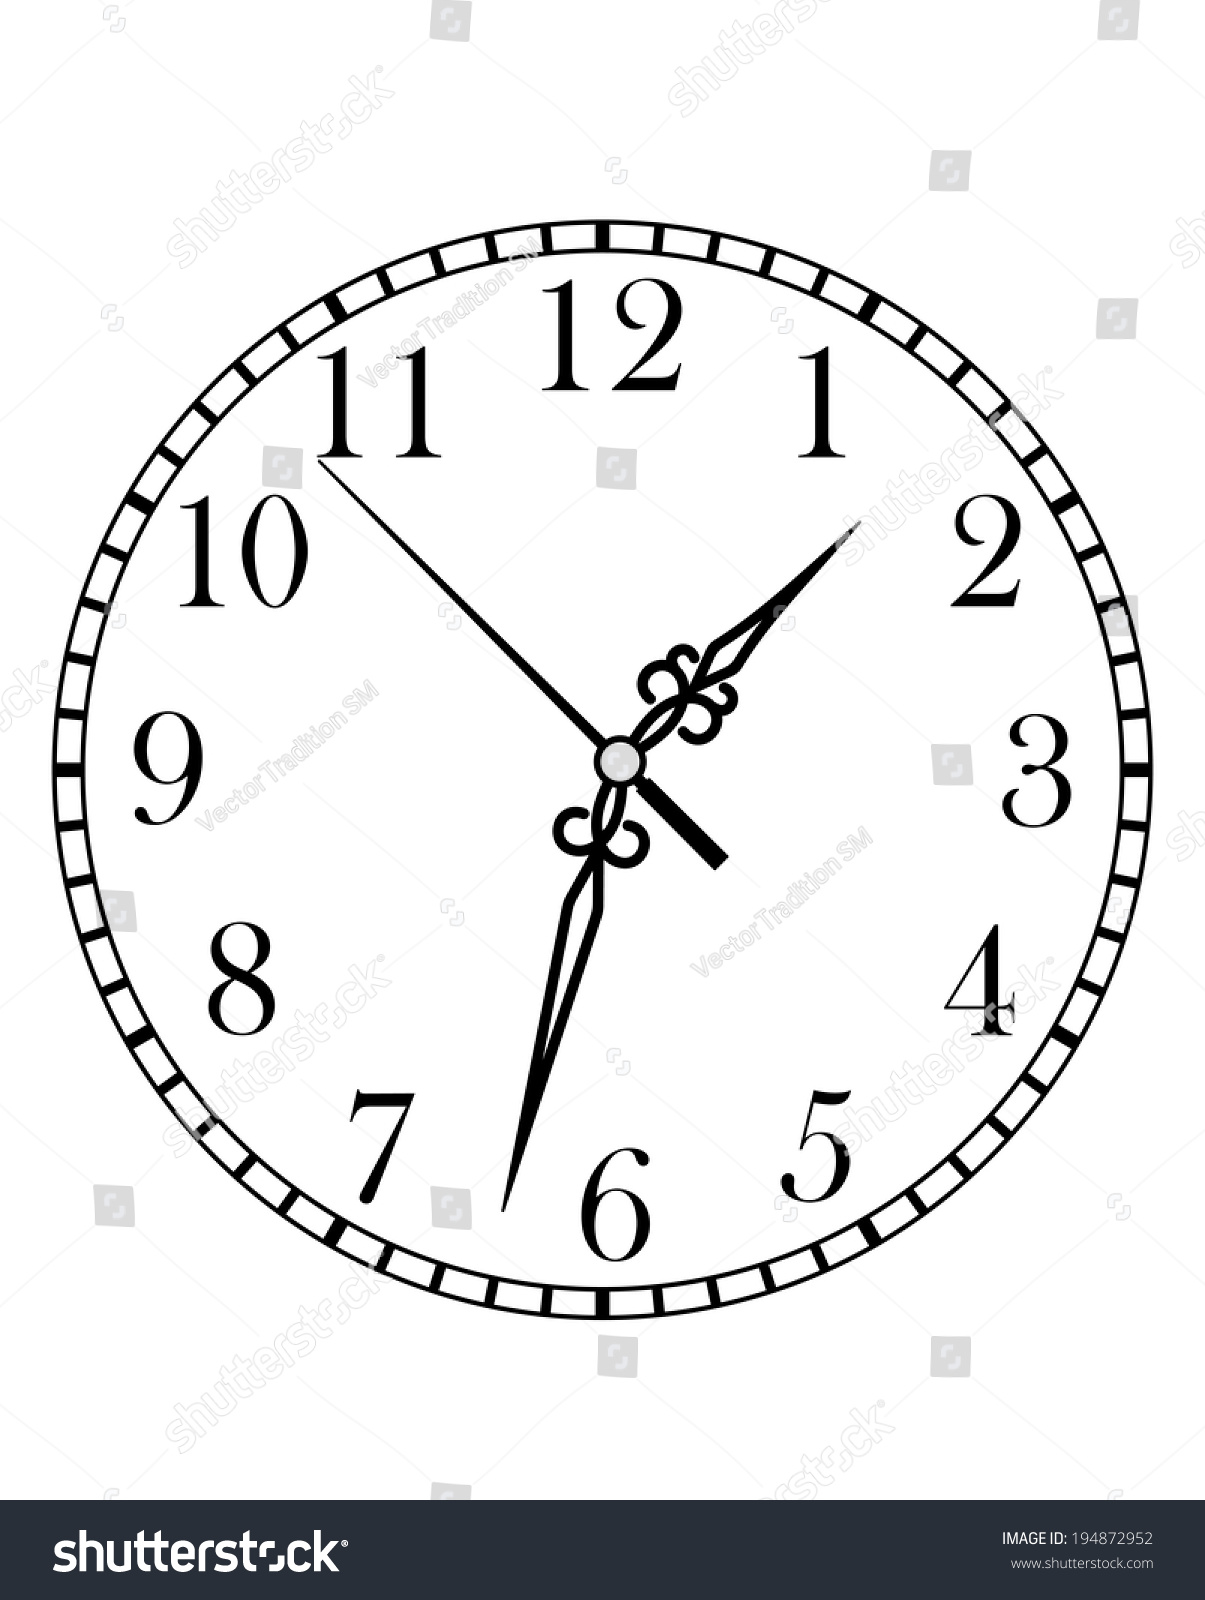 Line Drawing Of Clock Face : Worksheet clock faces with hands fun